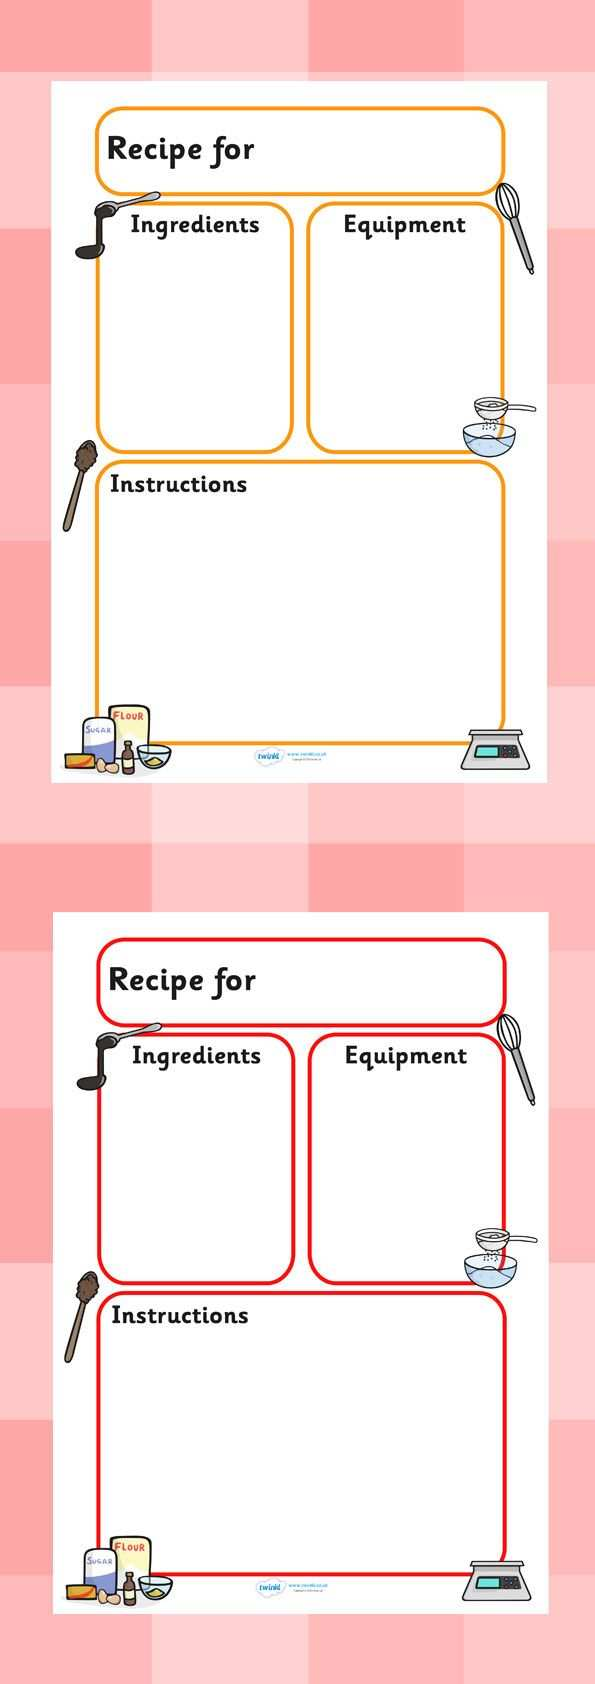 55 Free Preschool Cookie Recipe Card Template for Ms Word for Preschool Cookie Recipe Card Template